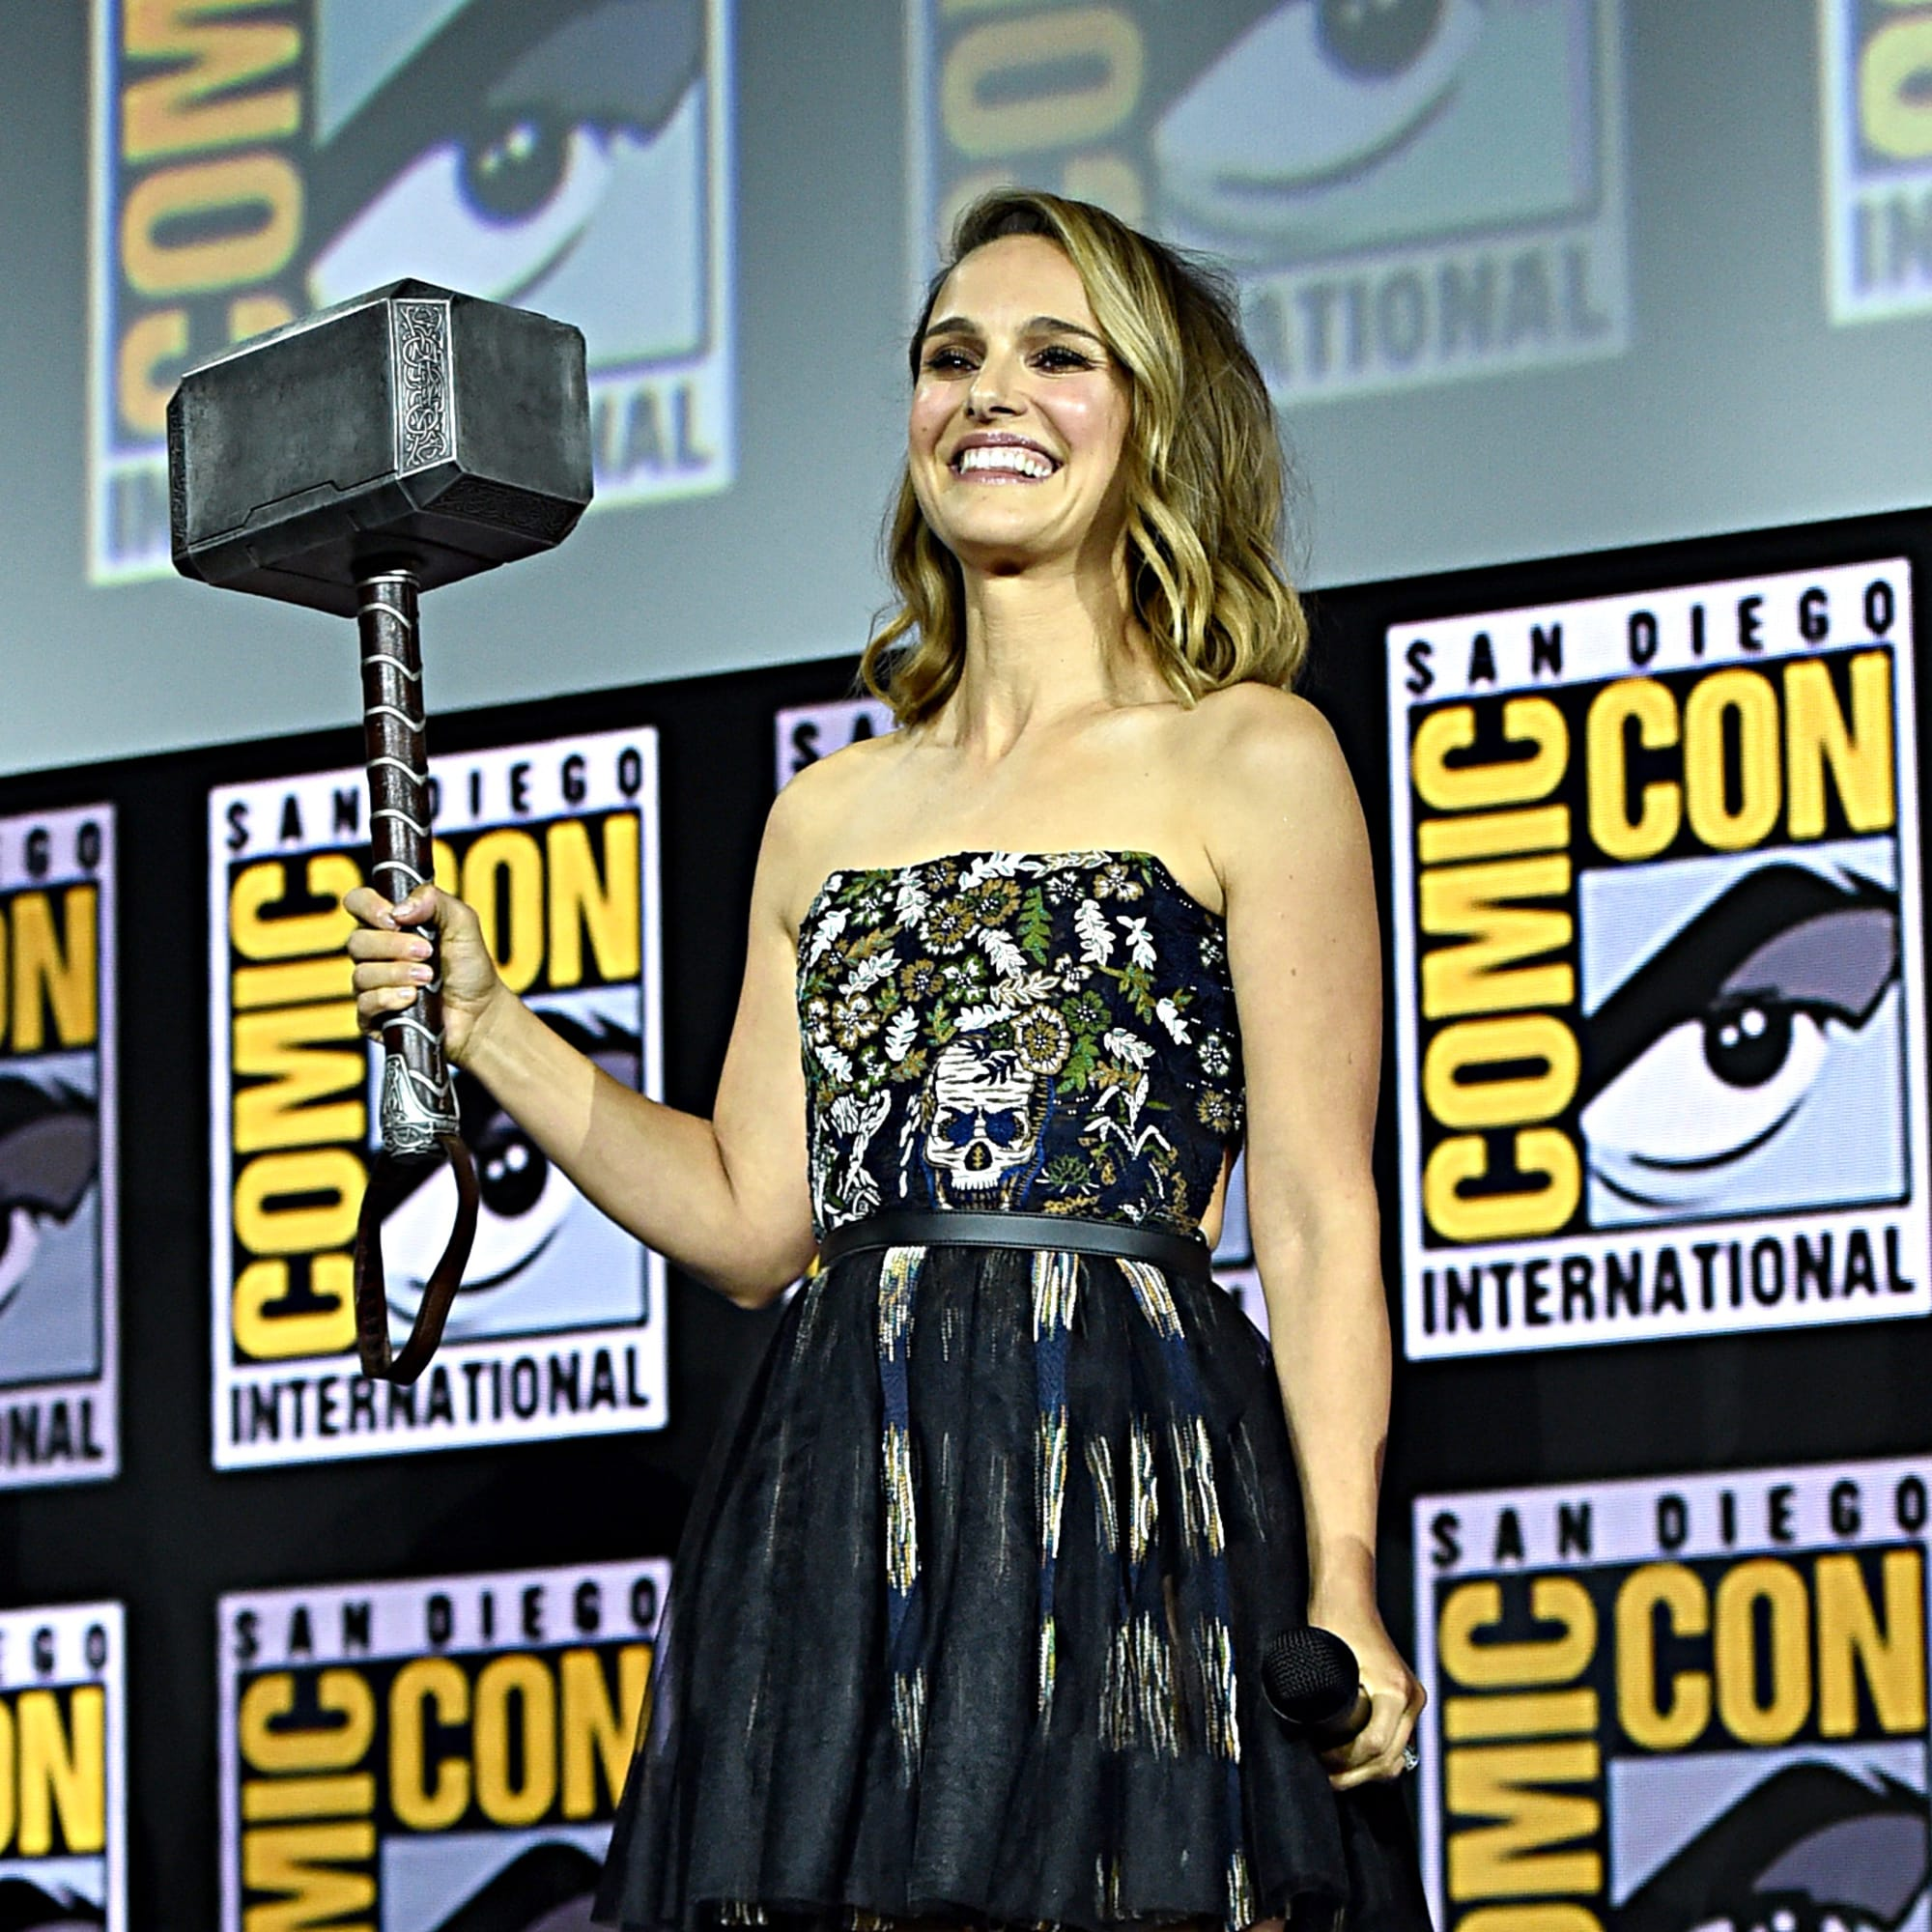 Thor: Natalie Portman's Mighty Thor revealed in incredible new Love and Thunder image